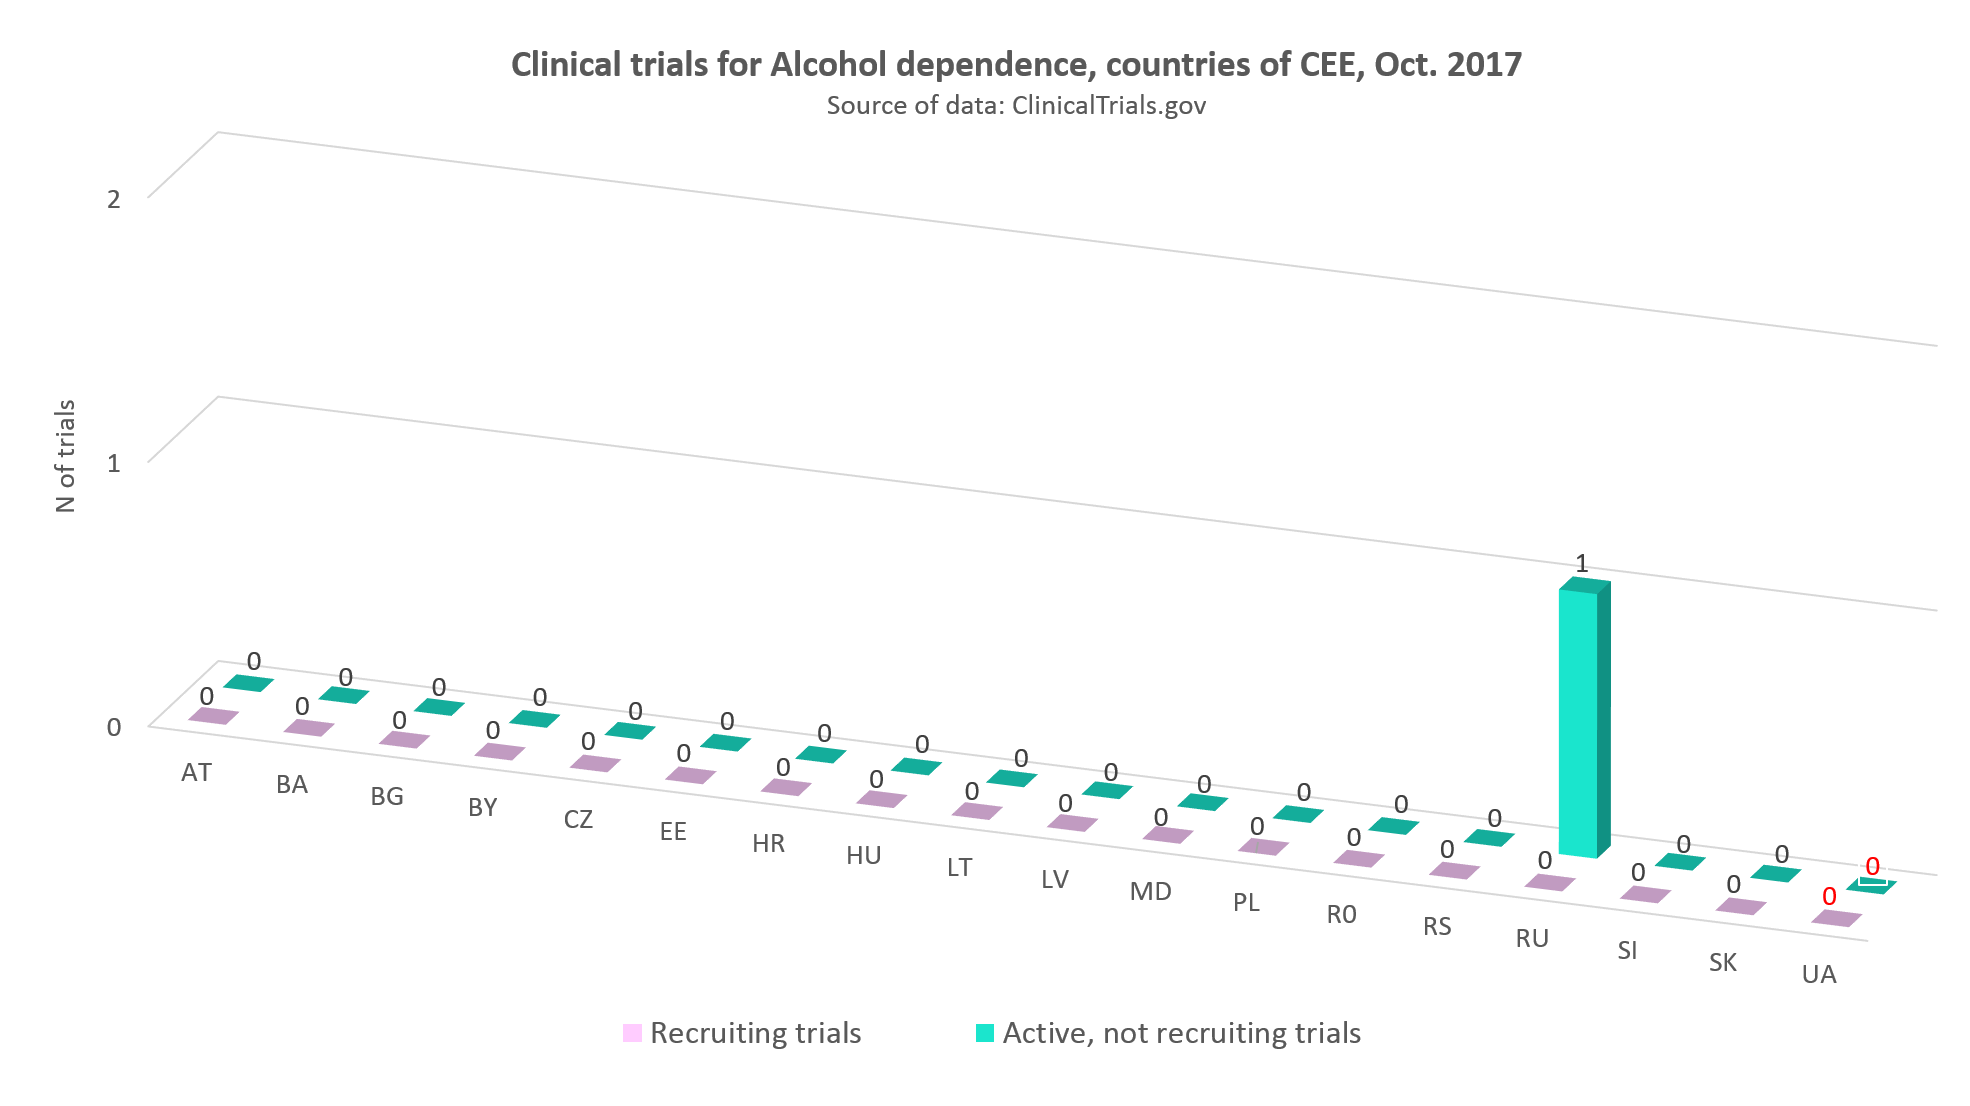 Clinical trials for alcohol dependence in the countries of CEE, Оctober 2017